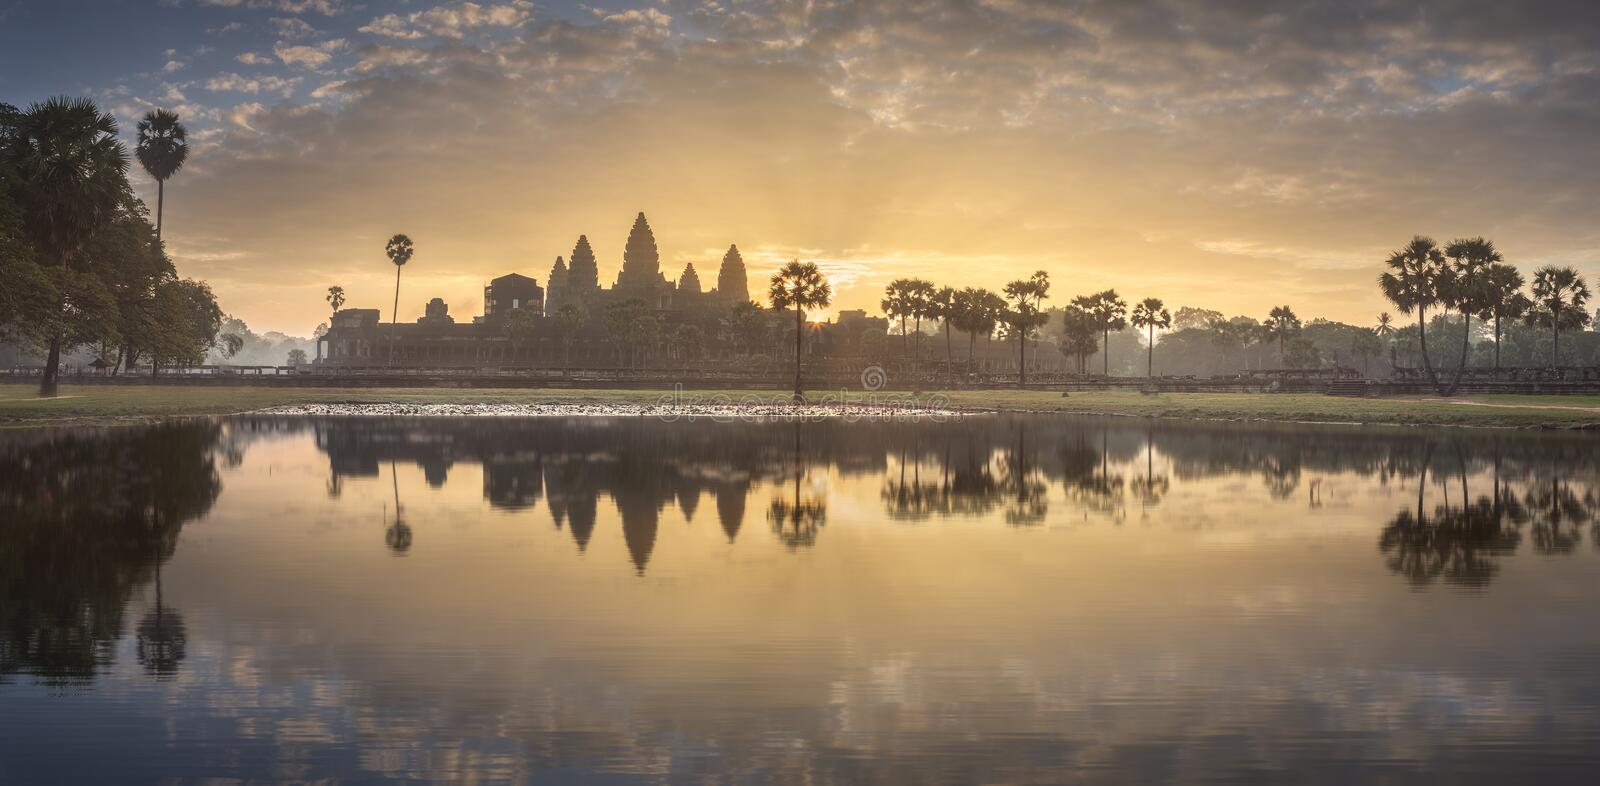 Temple complex Angkor Wat Siem Reap, Cambodia. Sunrise view of popular tourist attraction ancient temple complex Angkor Wat with reflected in lake Siem Reap royalty free stock images